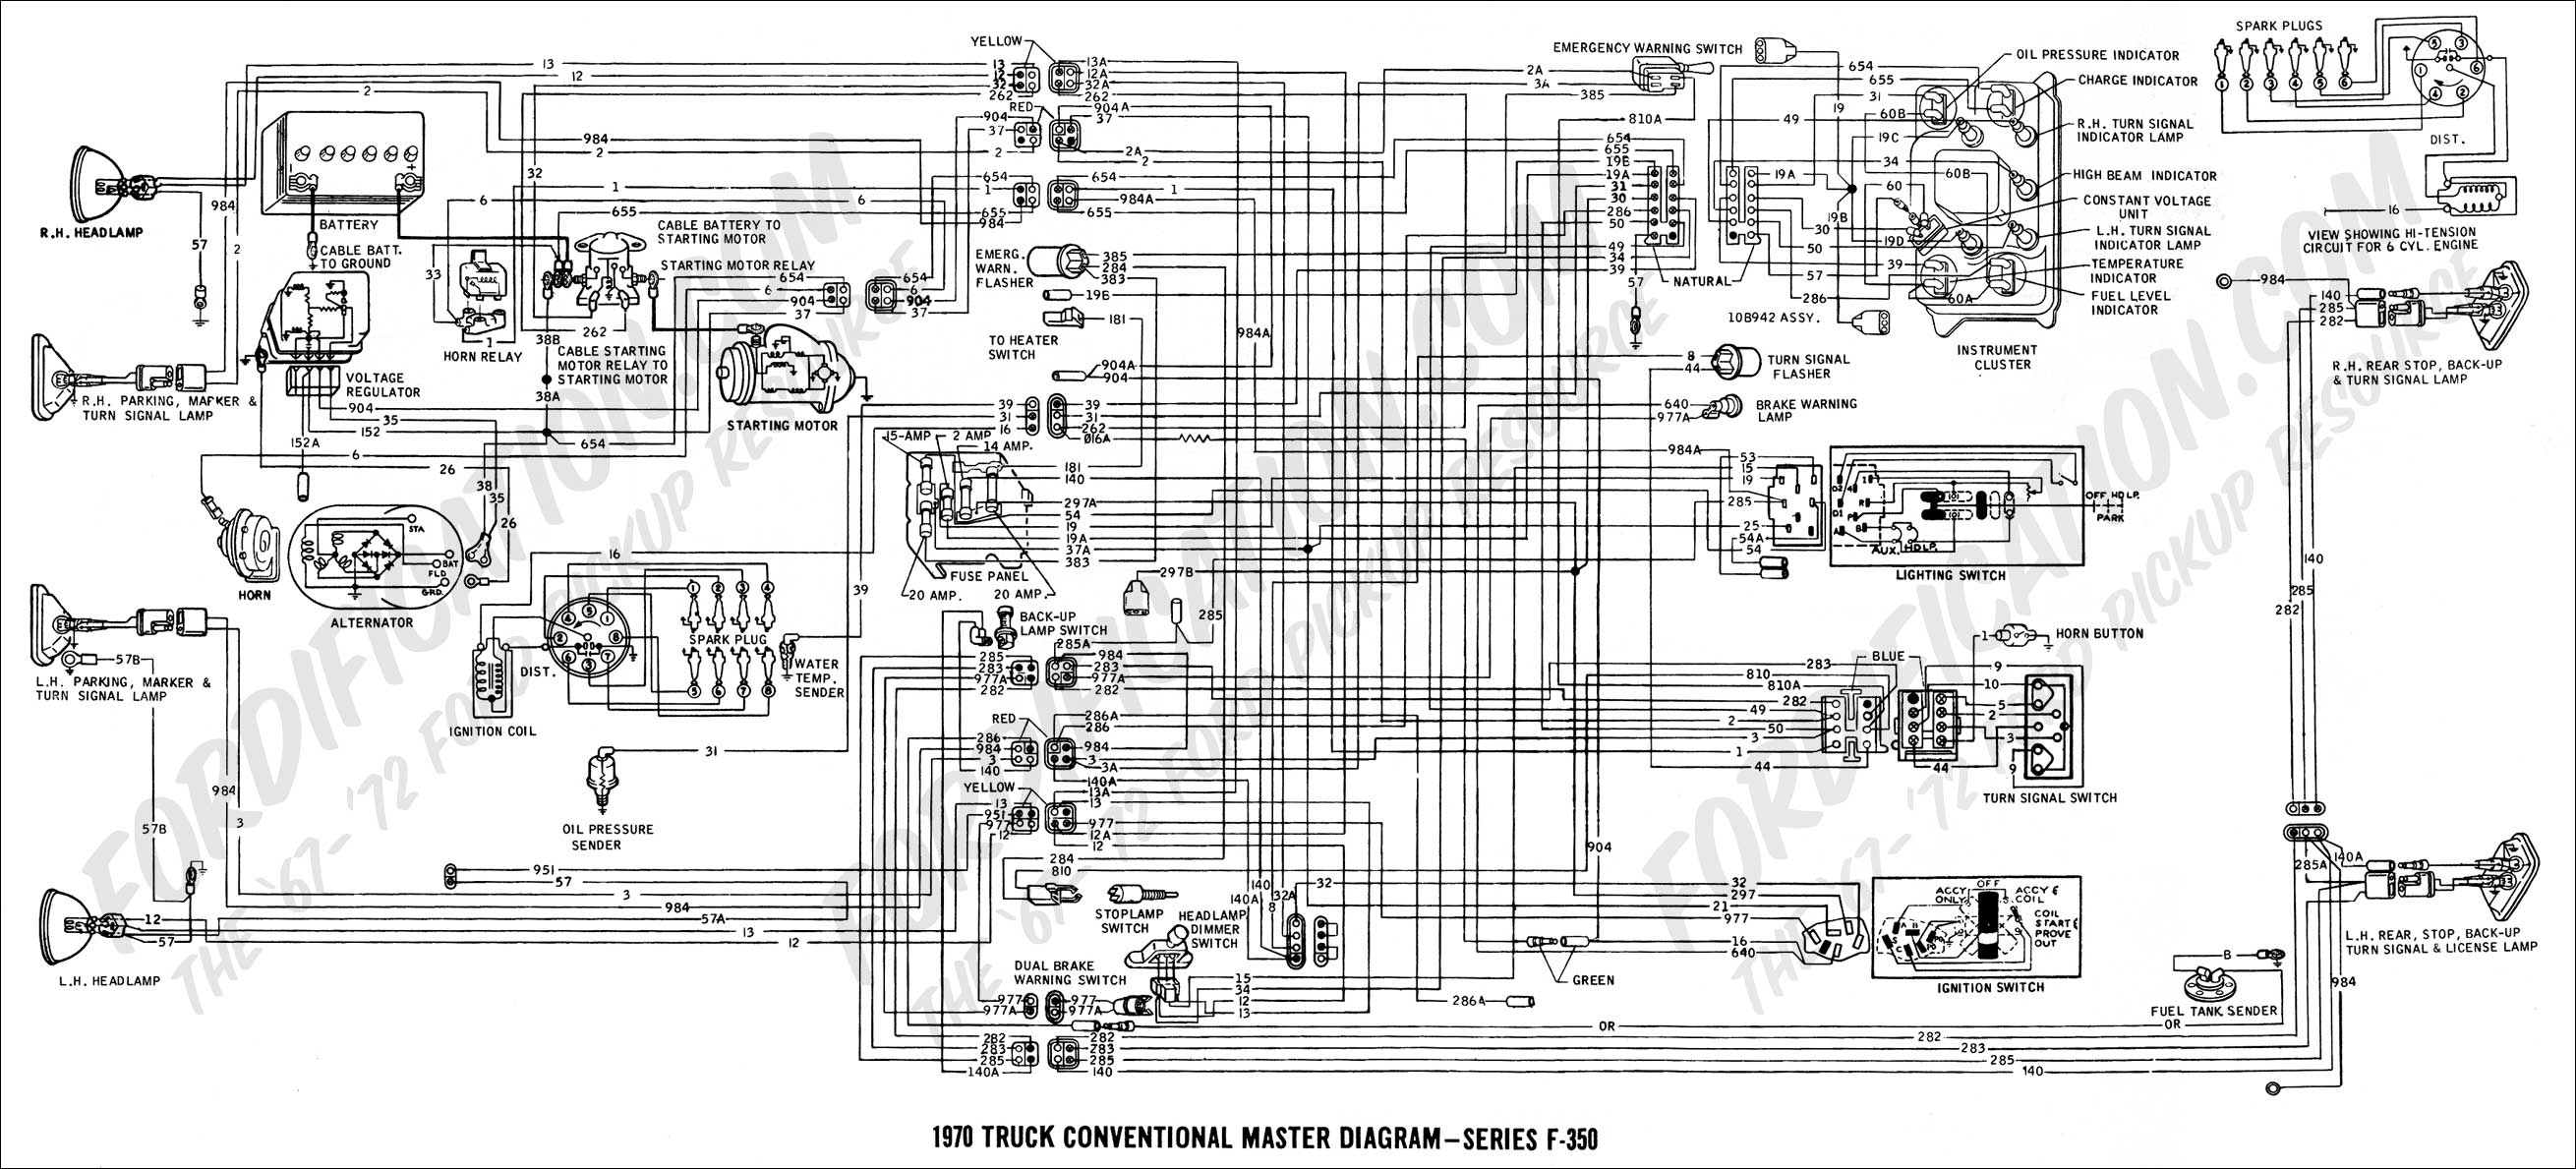 ford f wiring diagram ford image wiring diagram ford truck technical drawings and schematics section h wiring on ford f250 wiring diagram